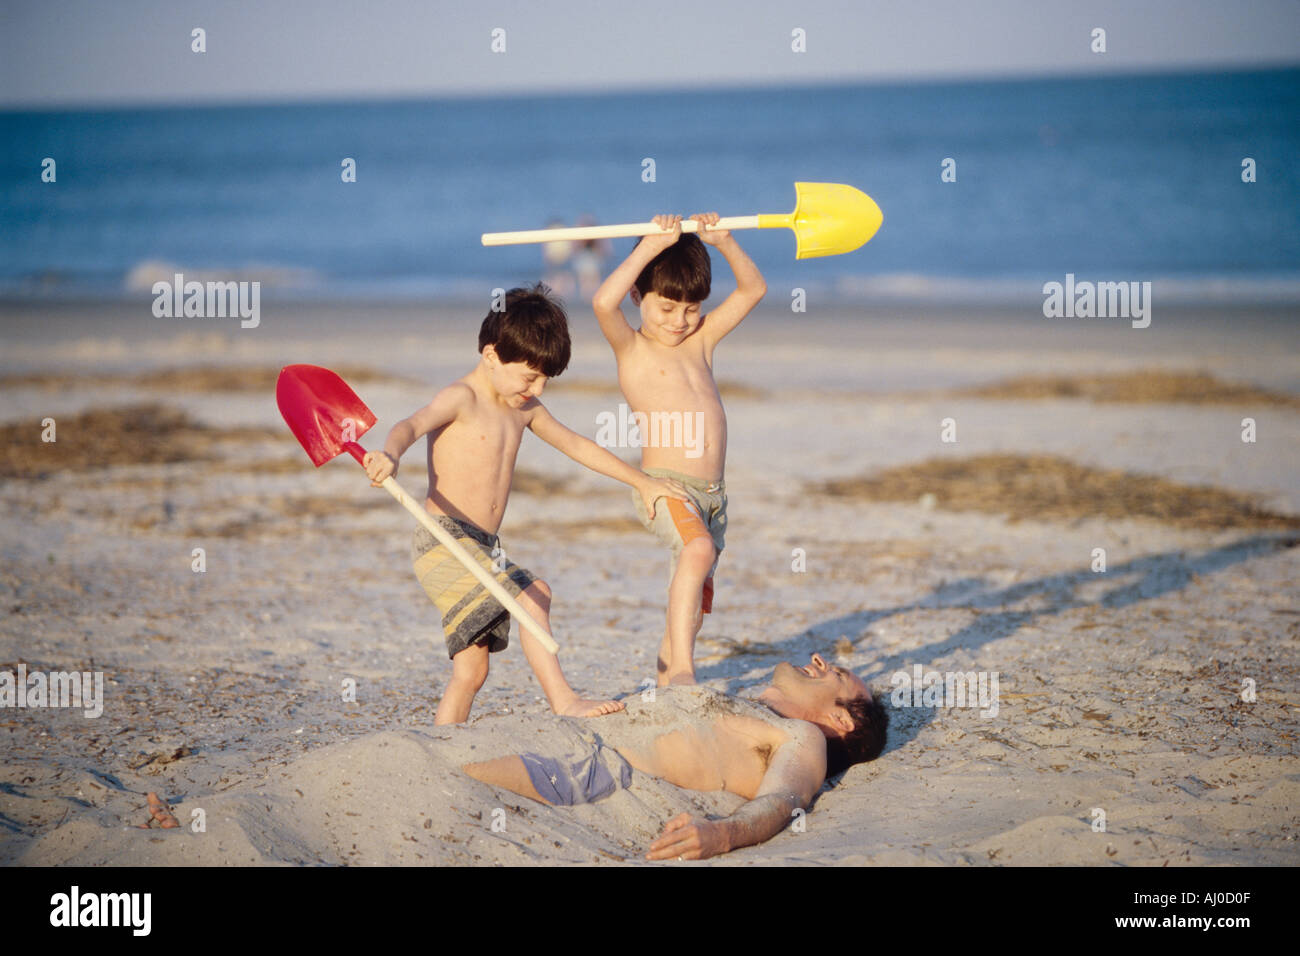 Young twin brothers wield plastic shovels ads they bury their father in the sand at a beach - Stock Image